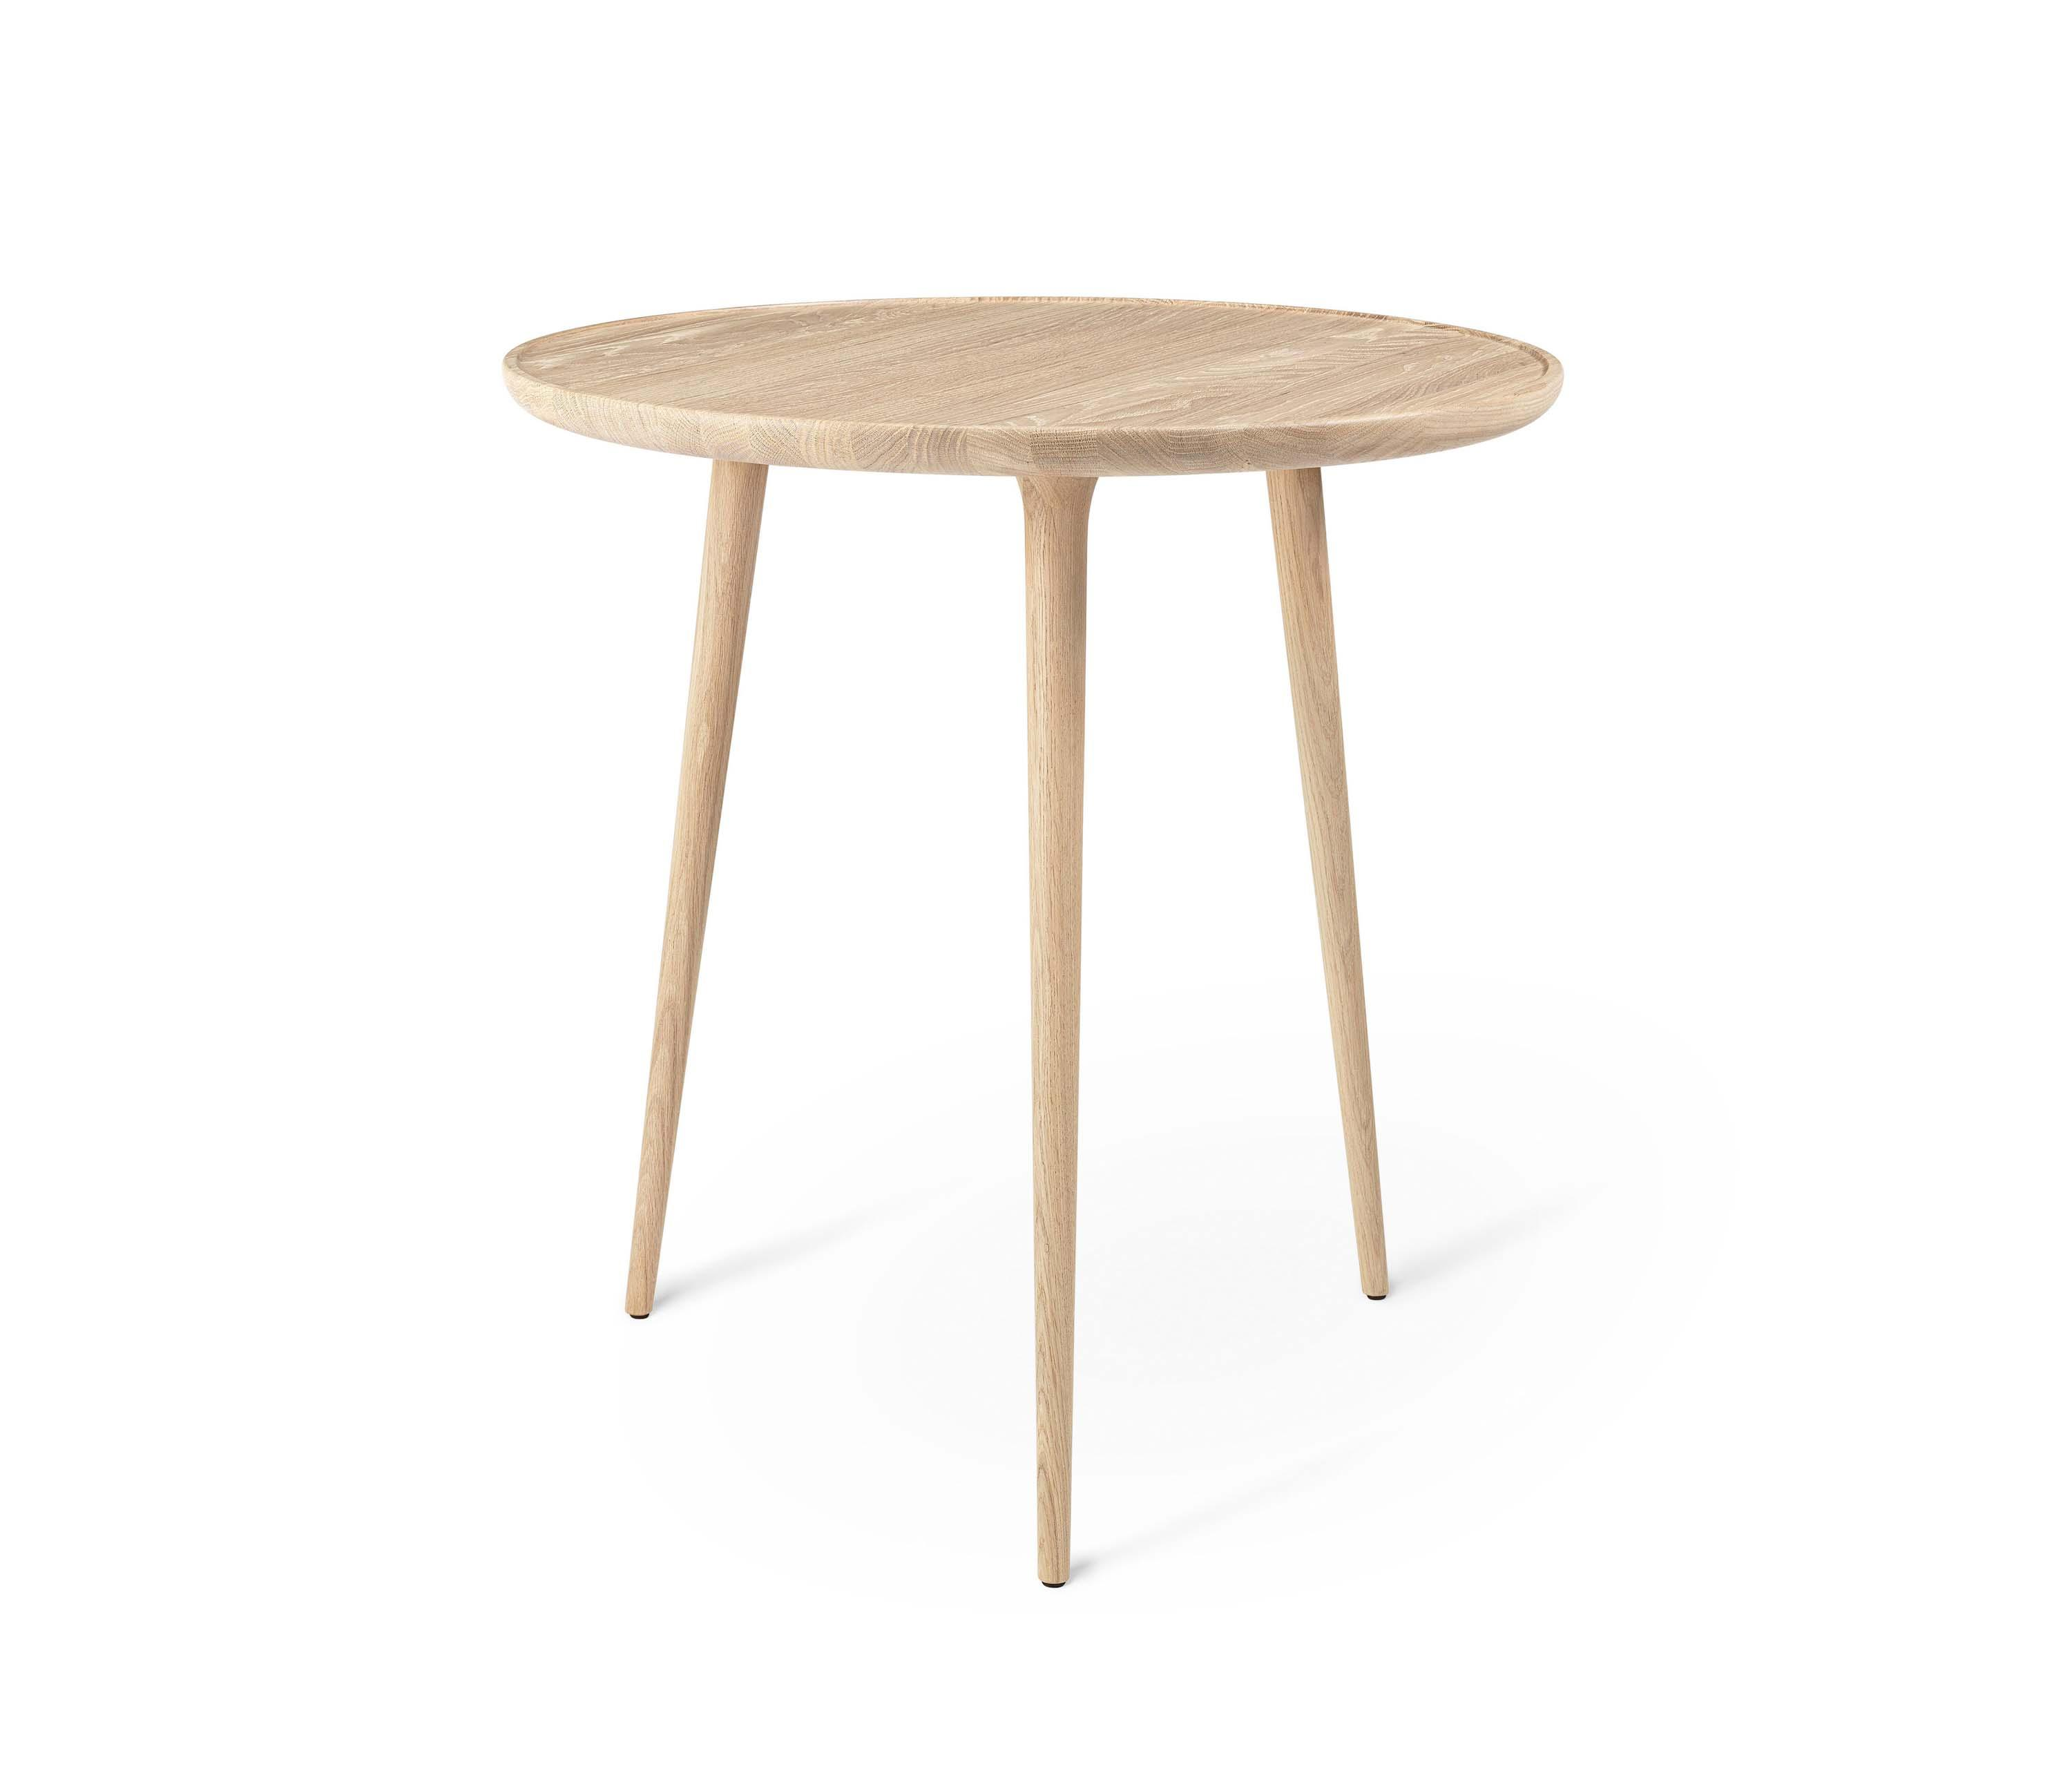 accent table mat lacquered oak bistro tables from mater natural lighting seattle nate berkus coffee elephant chair modern bedside ikea marble end pier one runner target storage